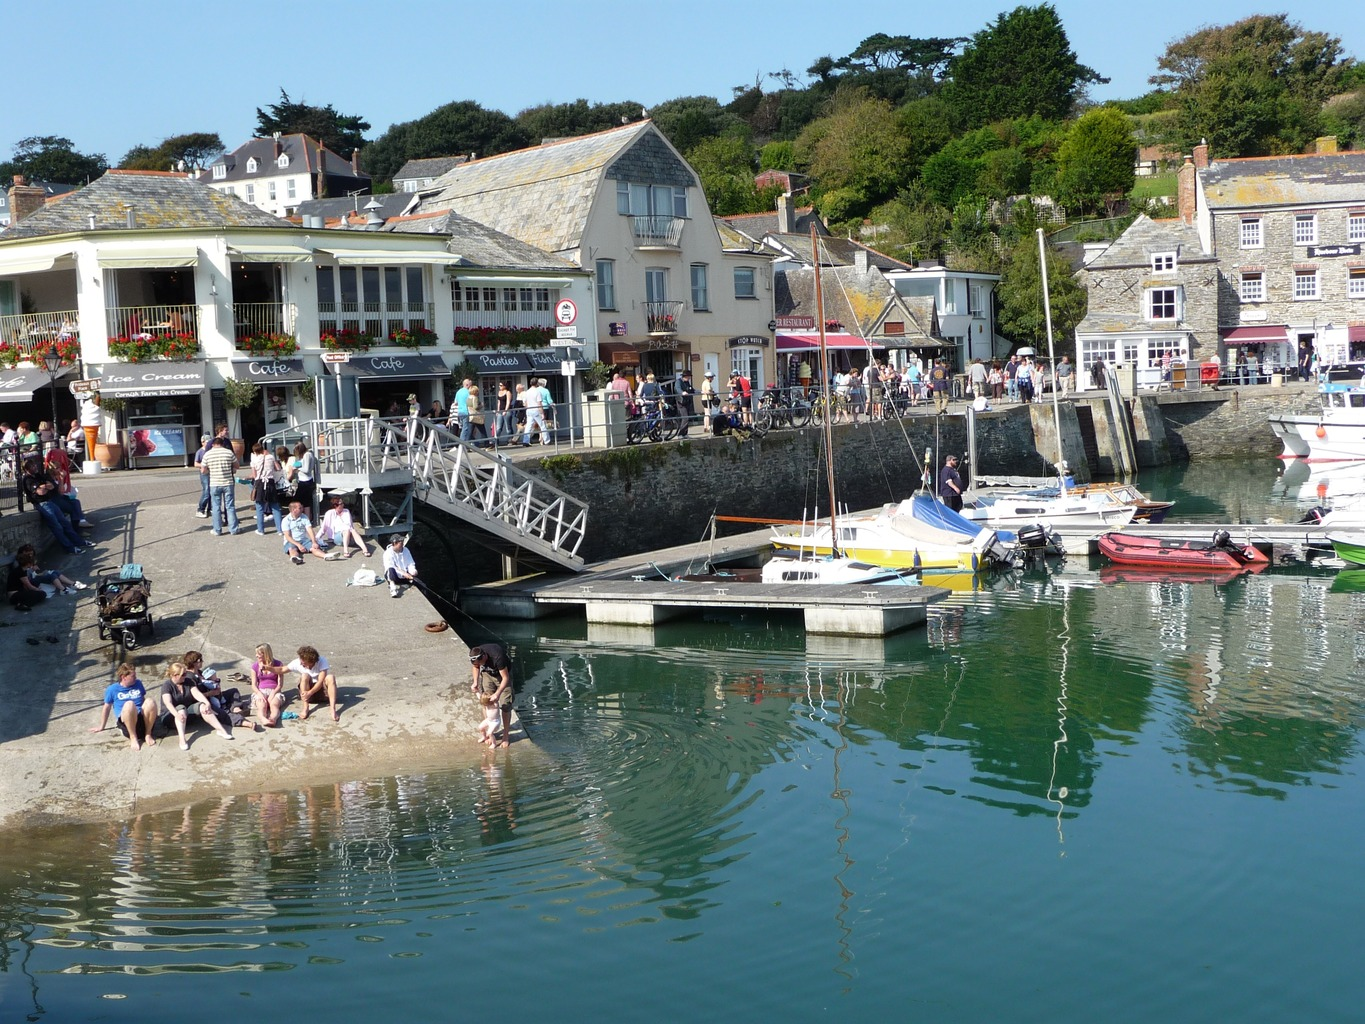 Tour Cornwall by Motorhome and visit Padstow Harbour